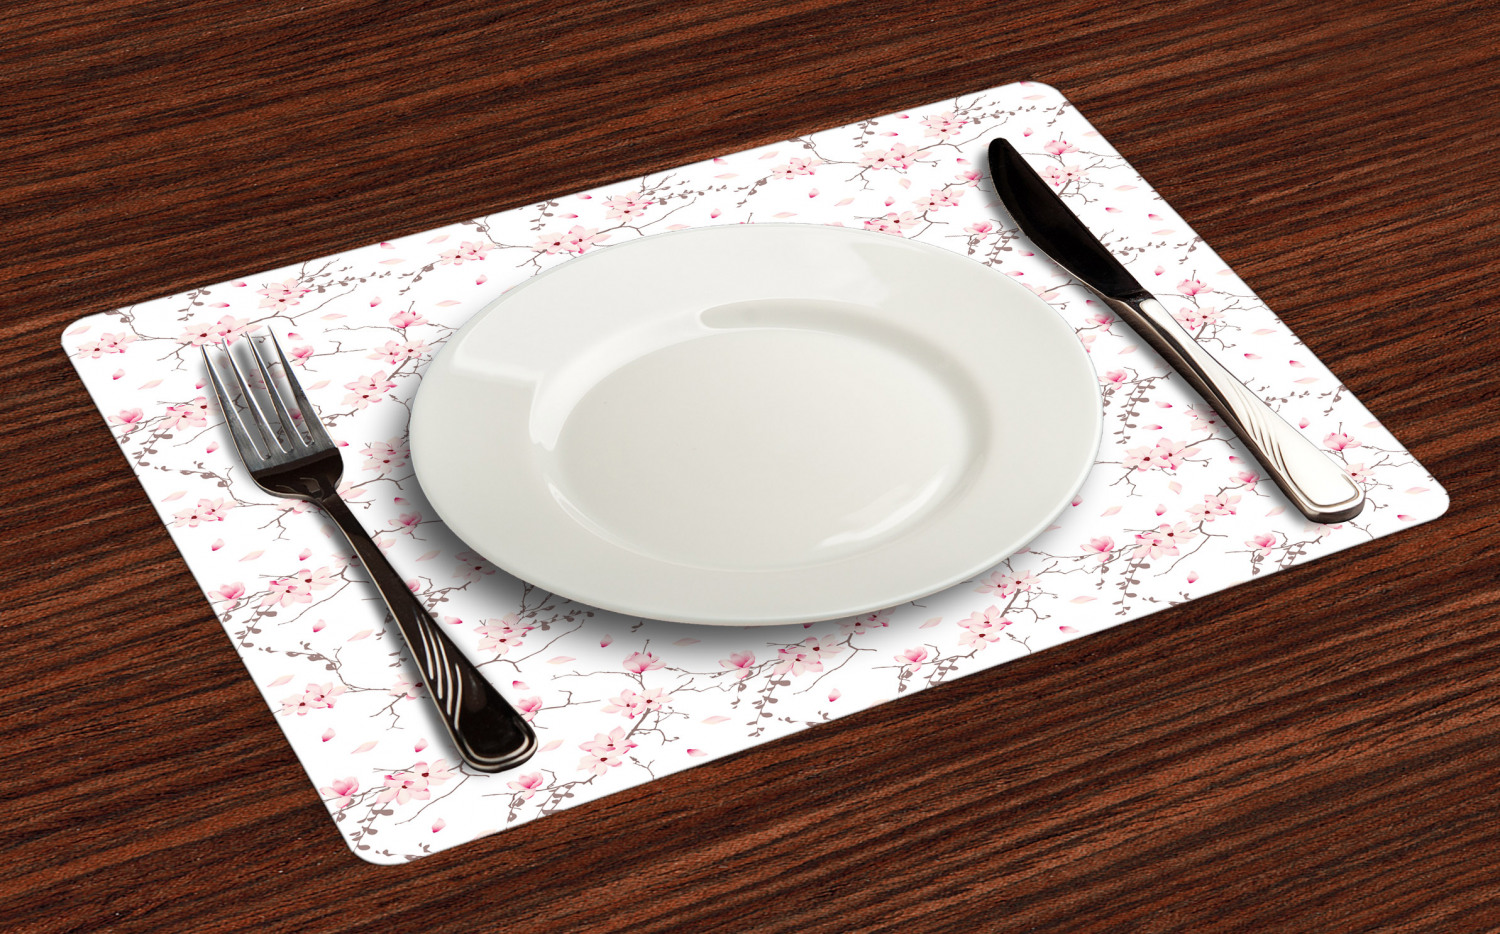 Ambesonne-Flower-Pattern-Placemat-Set-of-4-Fabric-Place-Mats-for-Table-Decor thumbnail 93